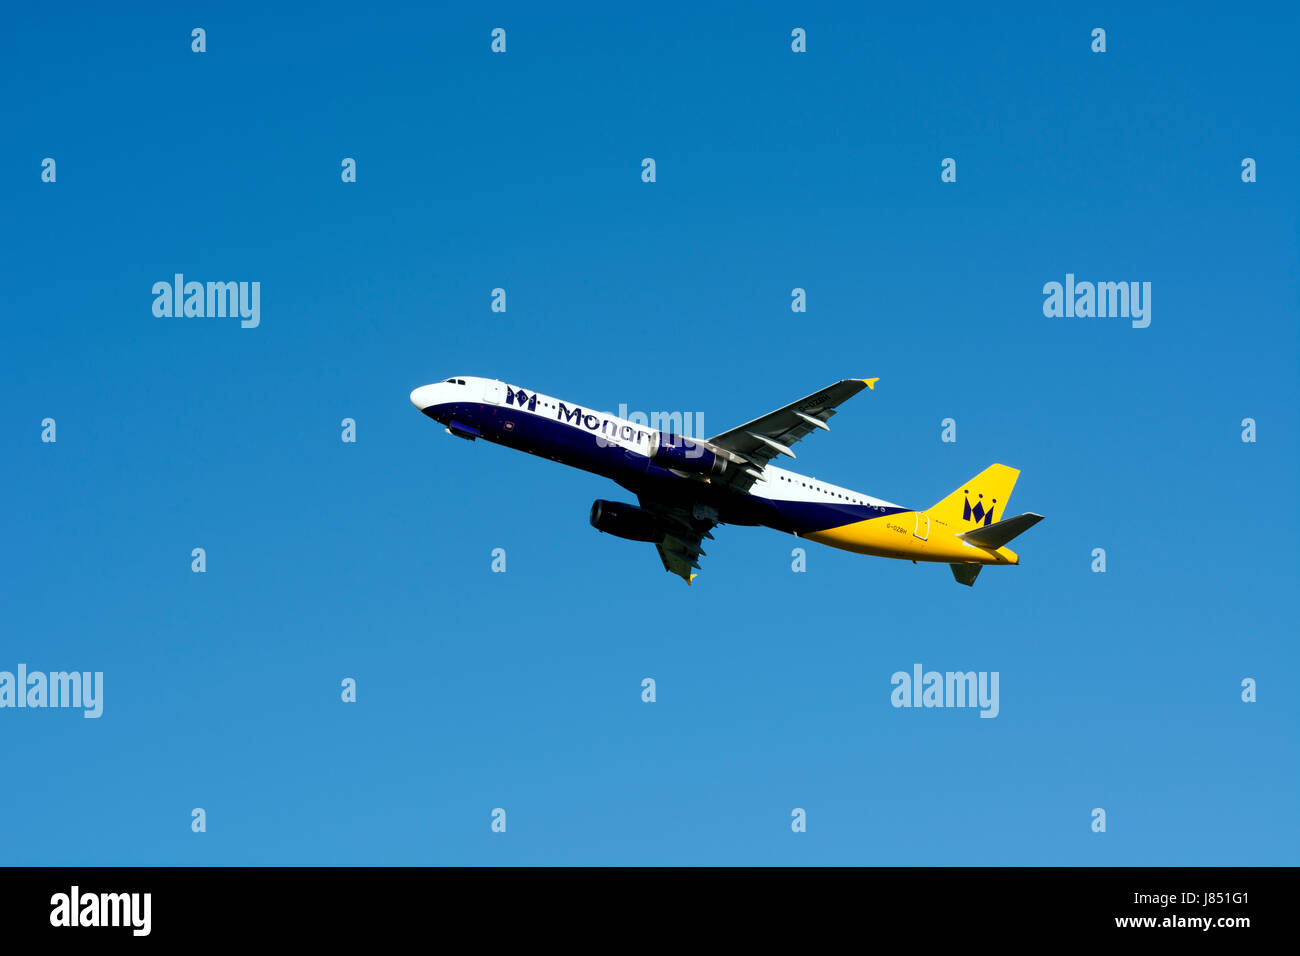 Monarch Airlines Airbus A321 taking off at Birmingham Airport, UK (G-OZBH) Stock Photo